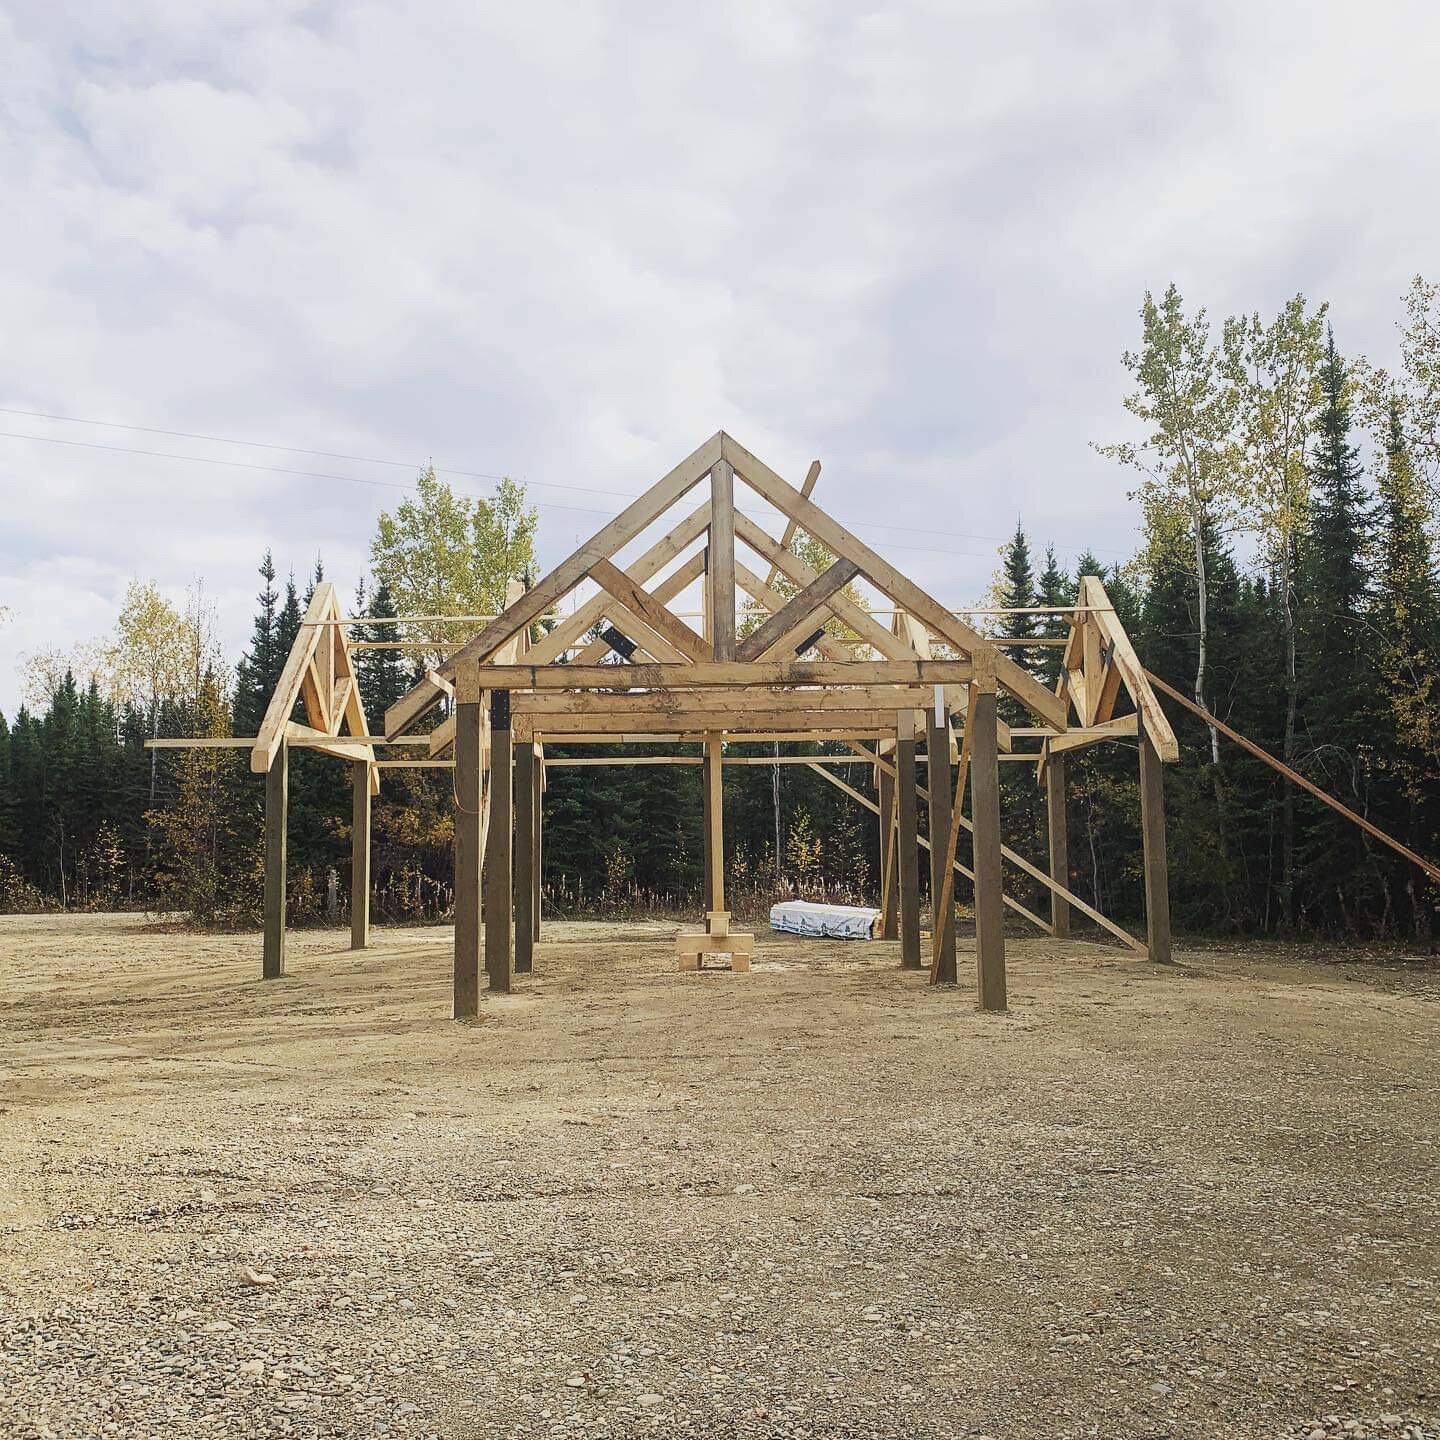 Construction of Mushing Pavillion